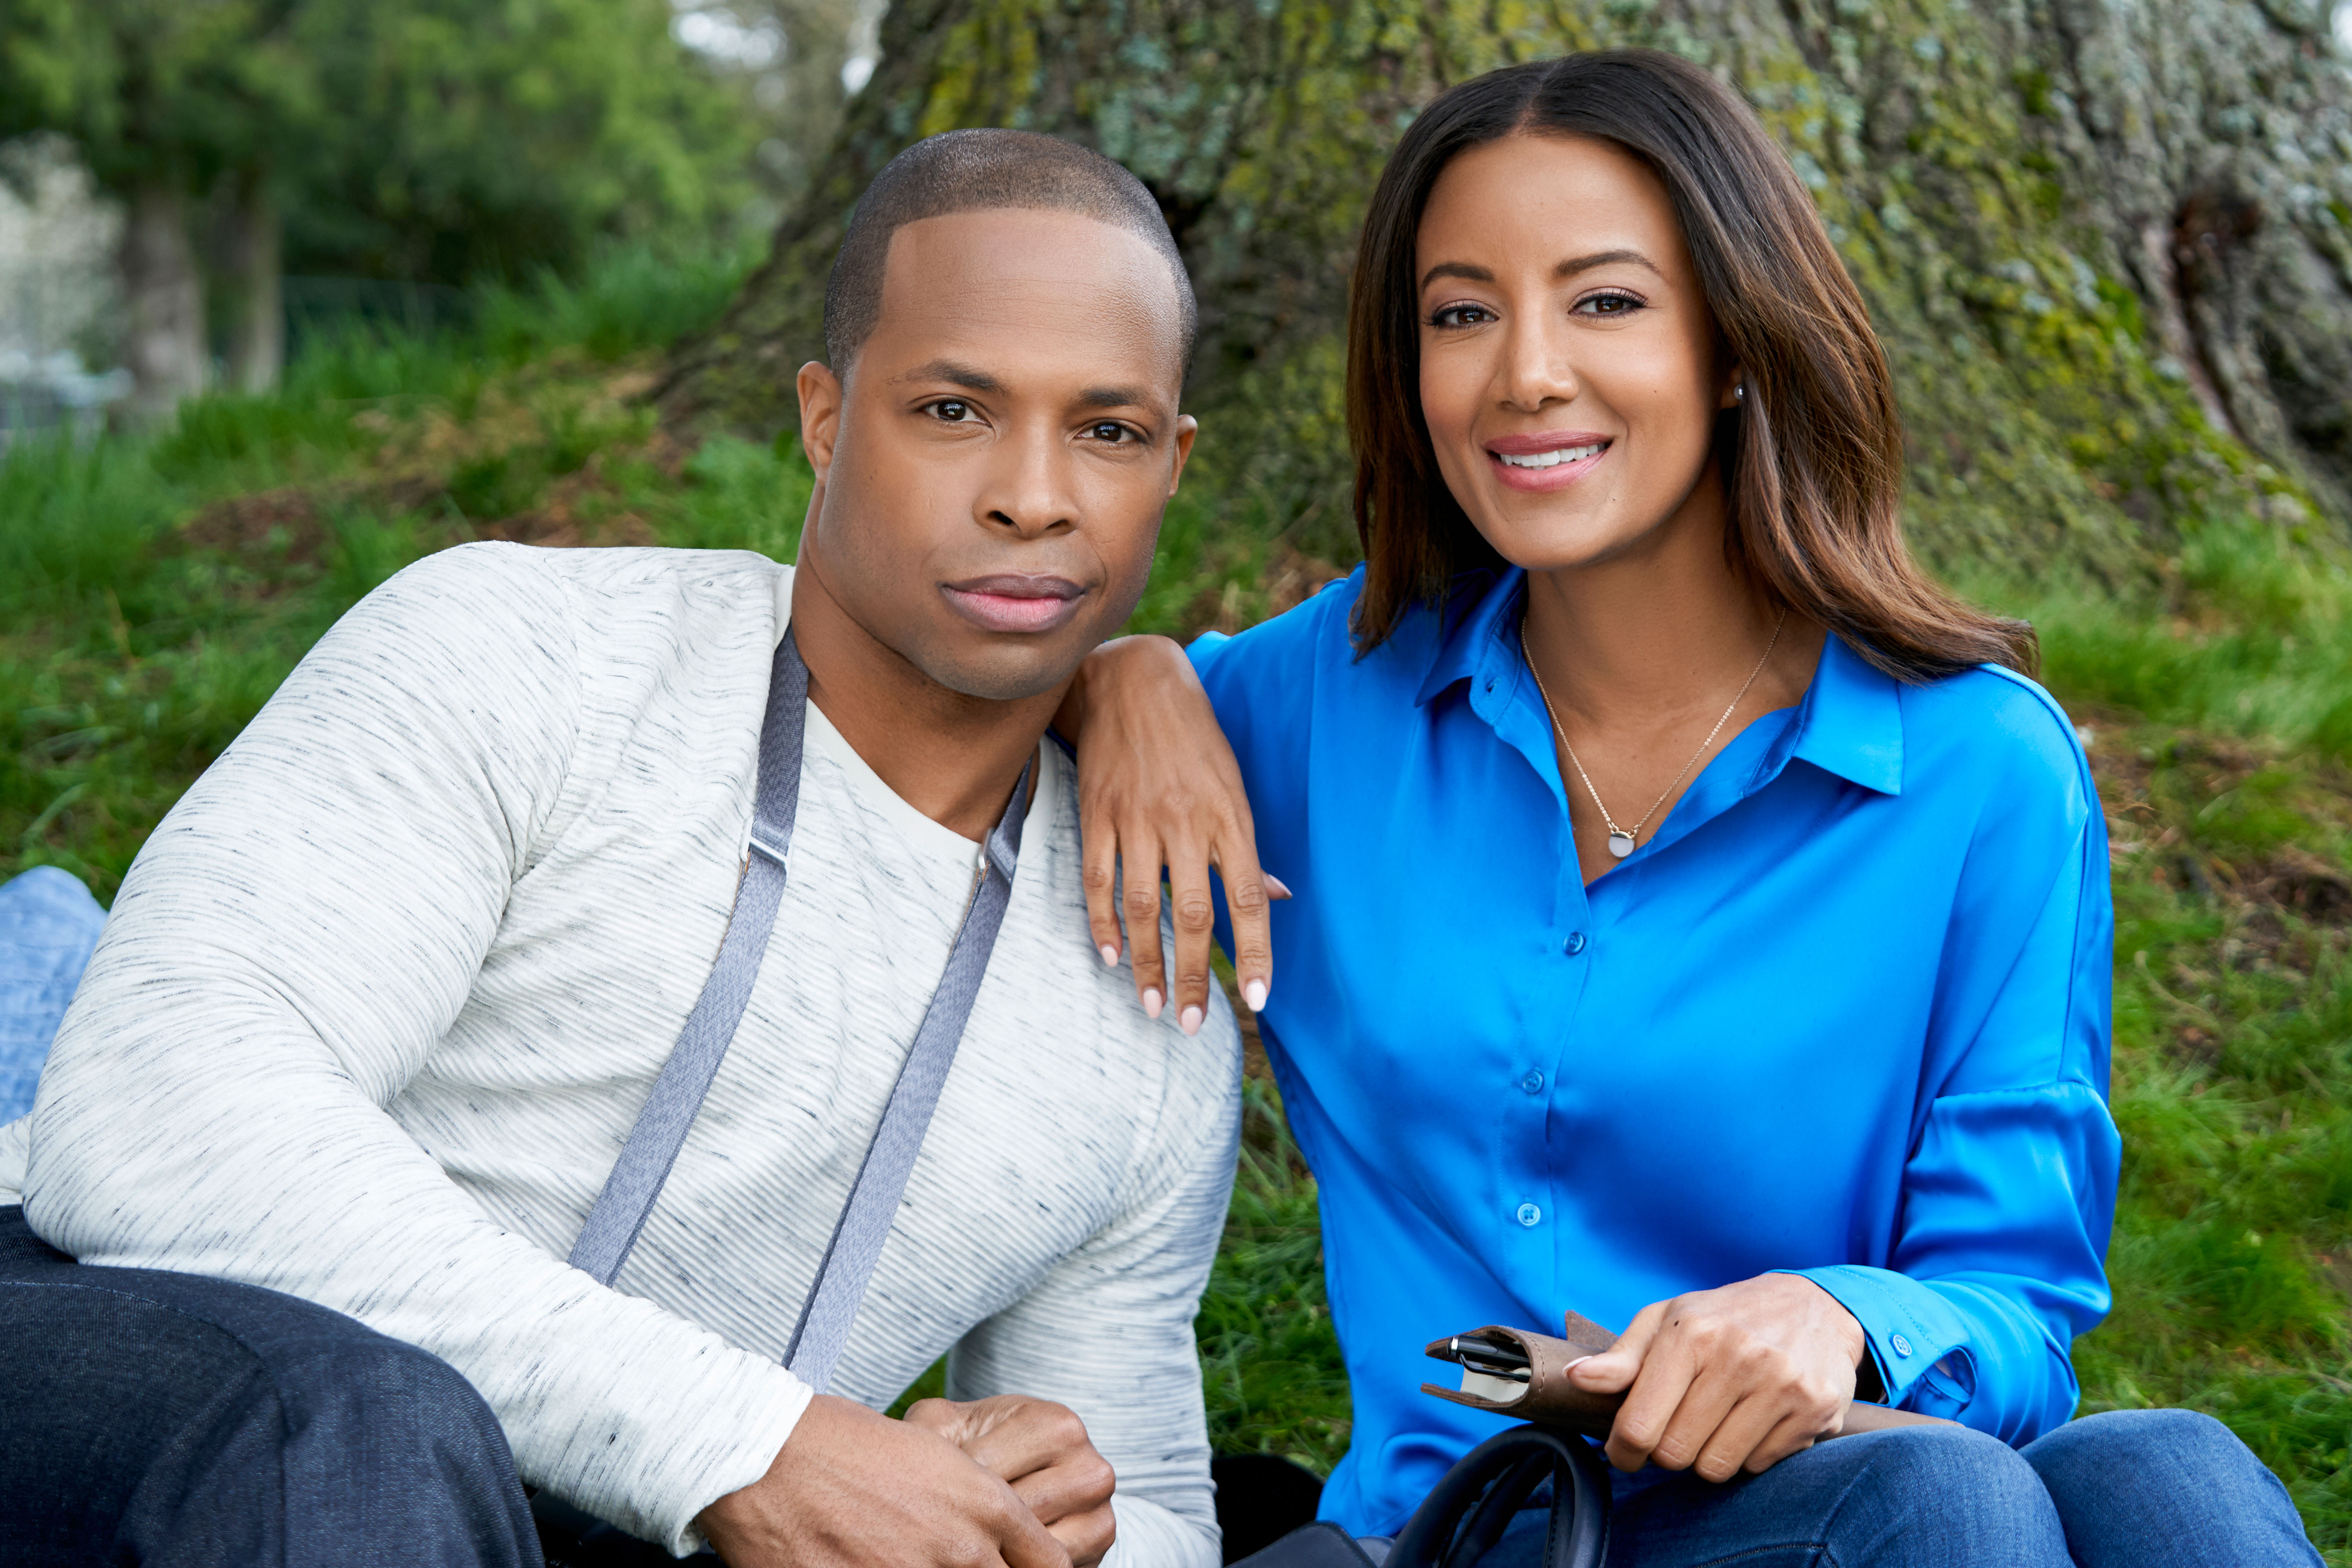 Heather Hemmens, Cornelius Smith, Jr. Hallmark Announces June Weddings Lineup 'LOVE, TAKE TWO - Roswell: New Mexico 's Heather Hemmens plays reality TV executive producer Lily Bellenger, who returns to her college town to film a wedding episode for three couples.